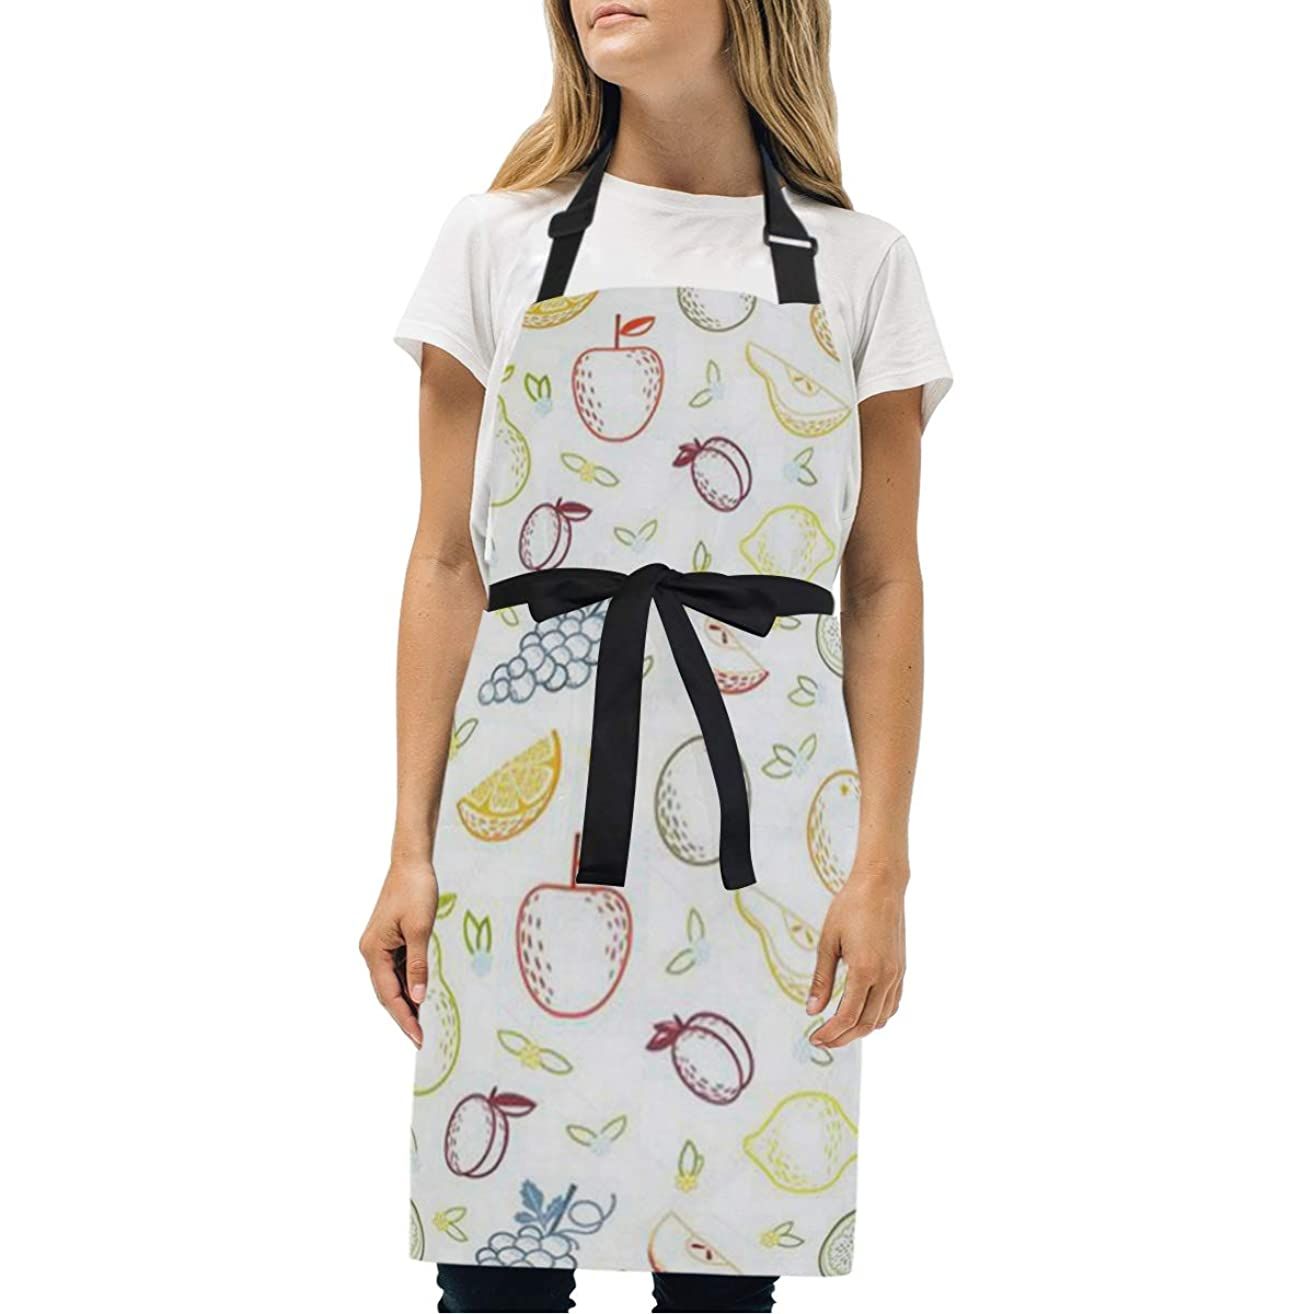 HJudge Womens Aprons Watercolor Fruit World Kitchen Bib Aprons with Pockets Adjustable Buckle on Neck